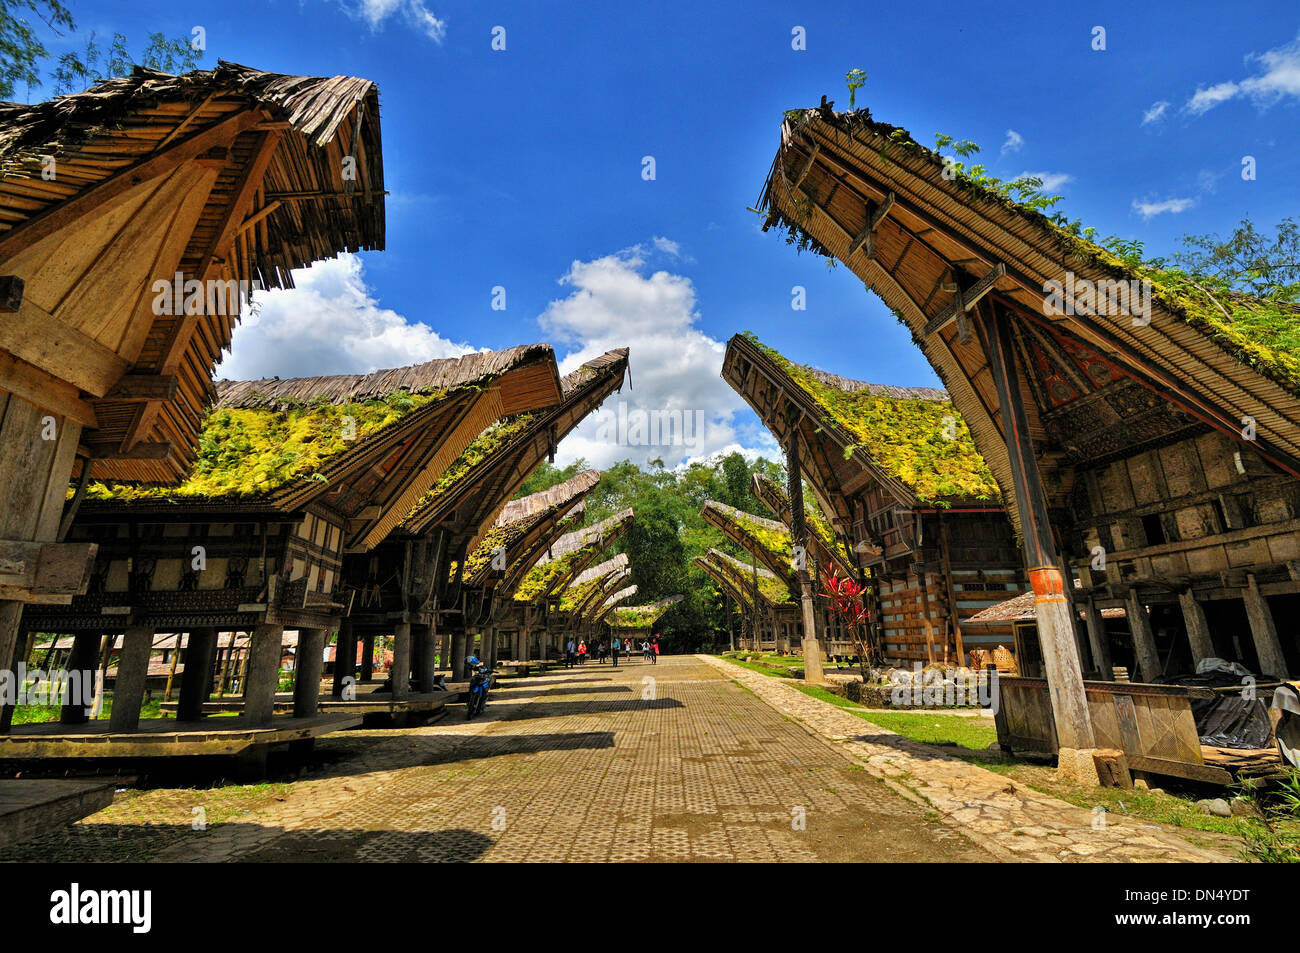 Rows of Tongkonan houses, Londa, South Sulawesi - Stock Image